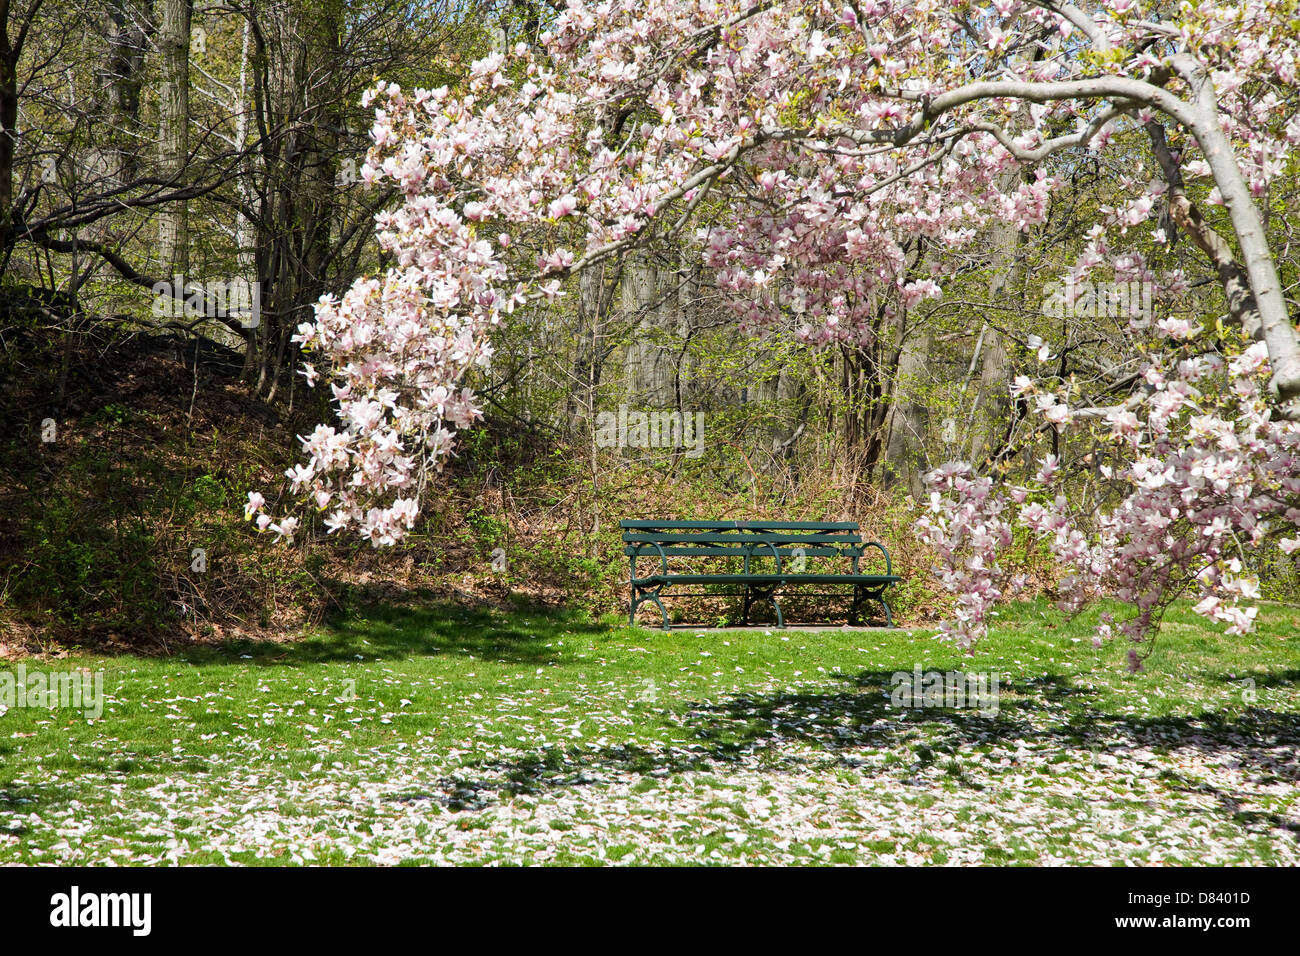 Green park bench in a garden framed by blooming magnolia tree - Stock Image